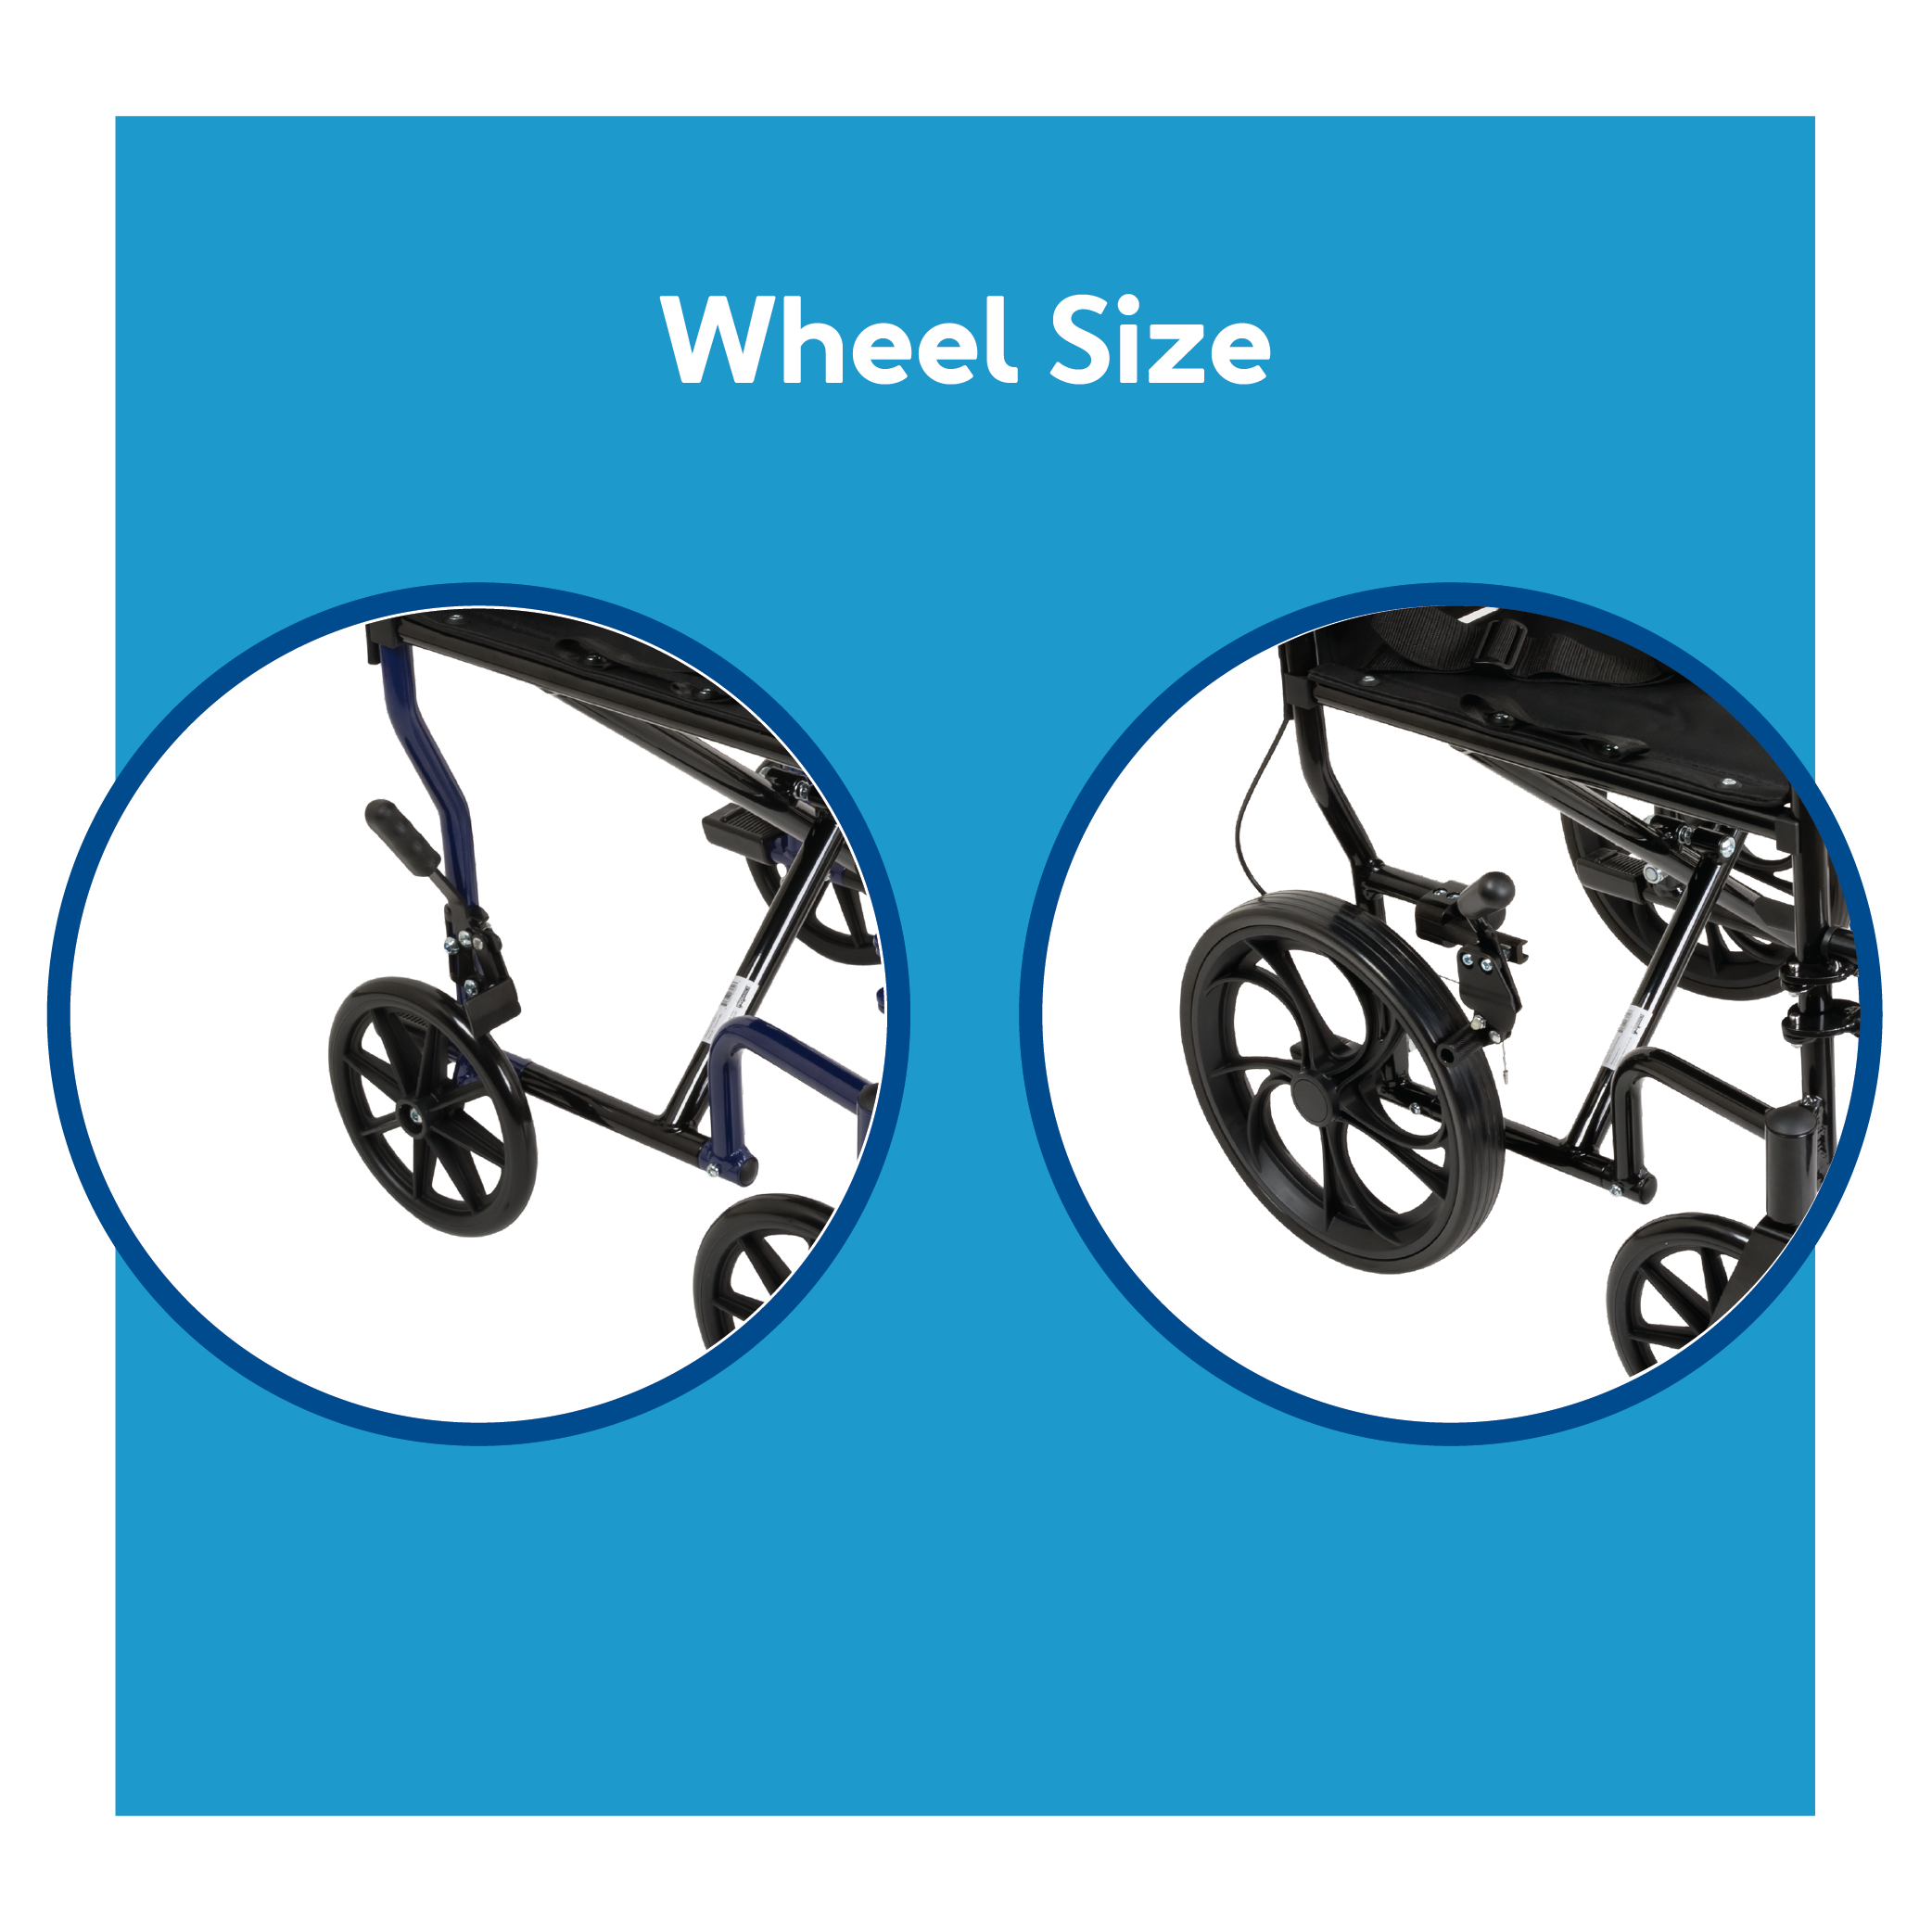 Transport Chair Wheel Size